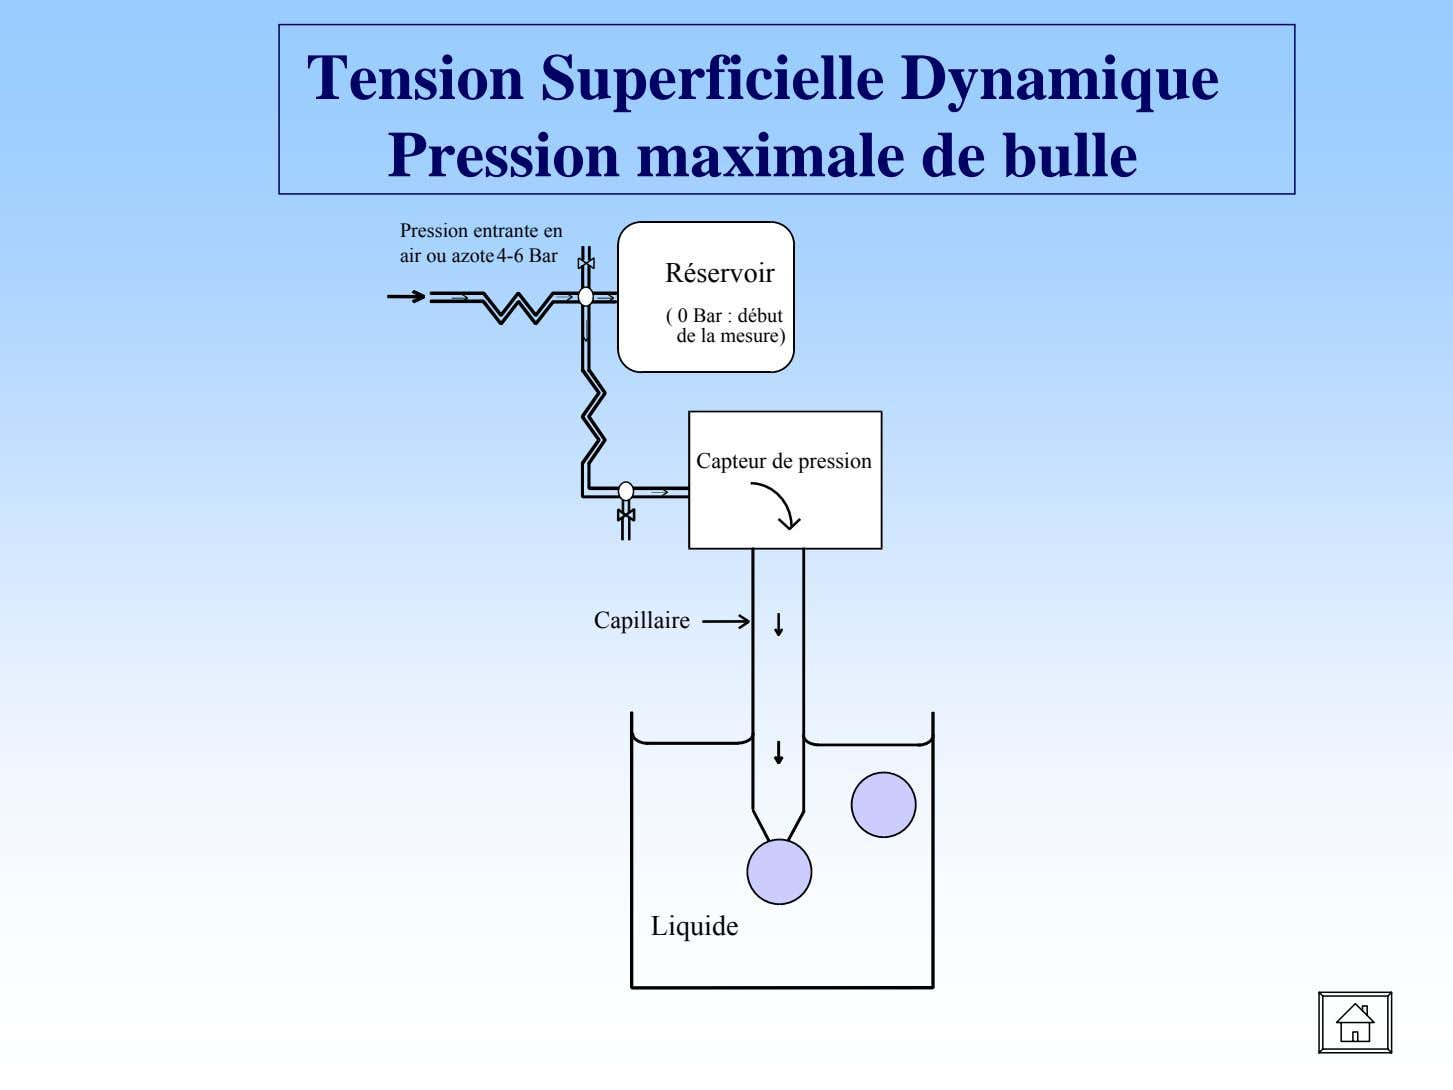 Tension Superficielle Dynamique Pression maximale de bulle Pression entrante en air ou azote4-6 Bar Réservoir